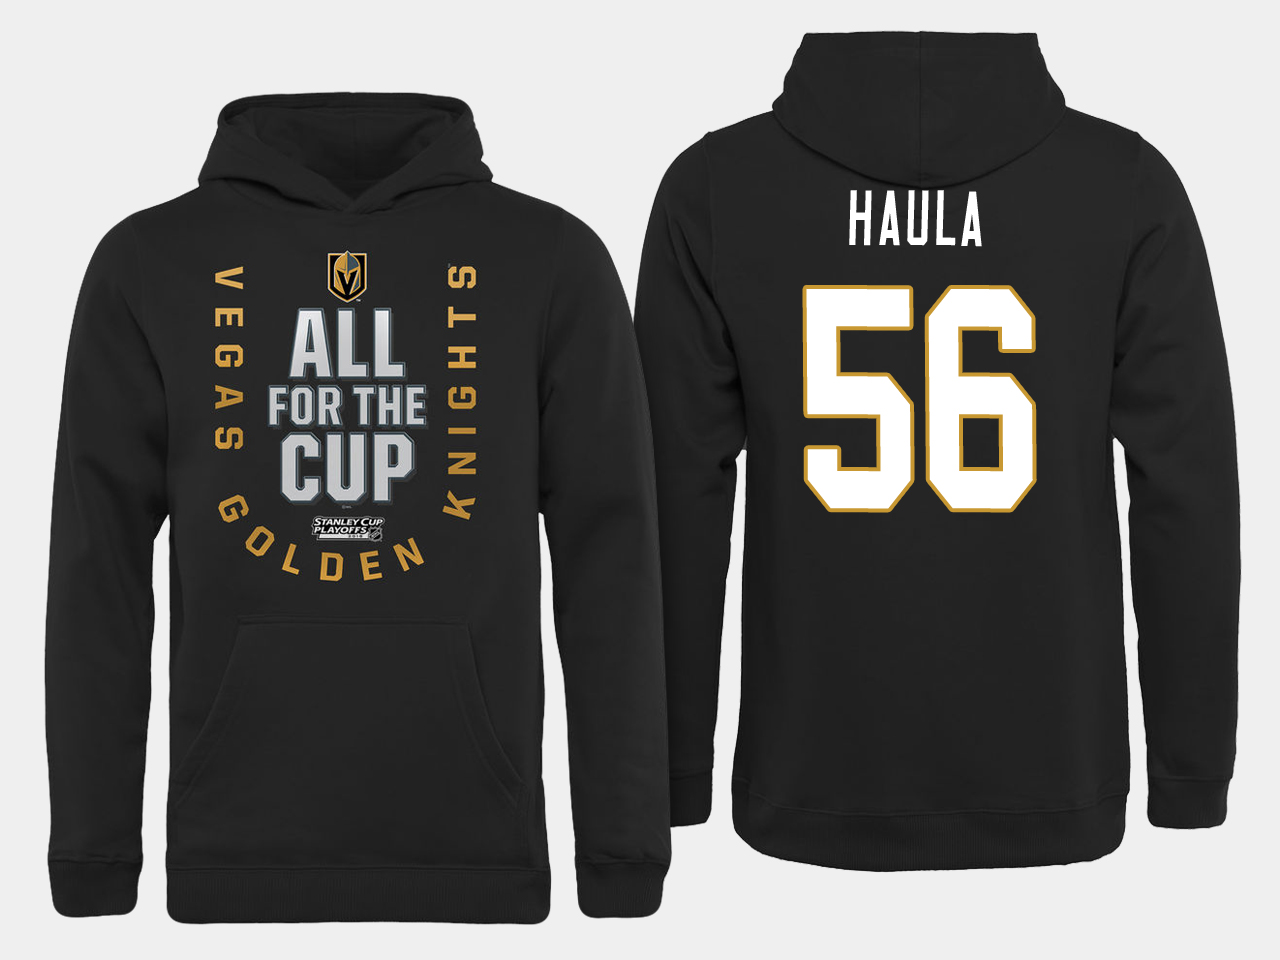 Men NHL Vegas Golden Knights 56 Haula All for the Cup hoodie